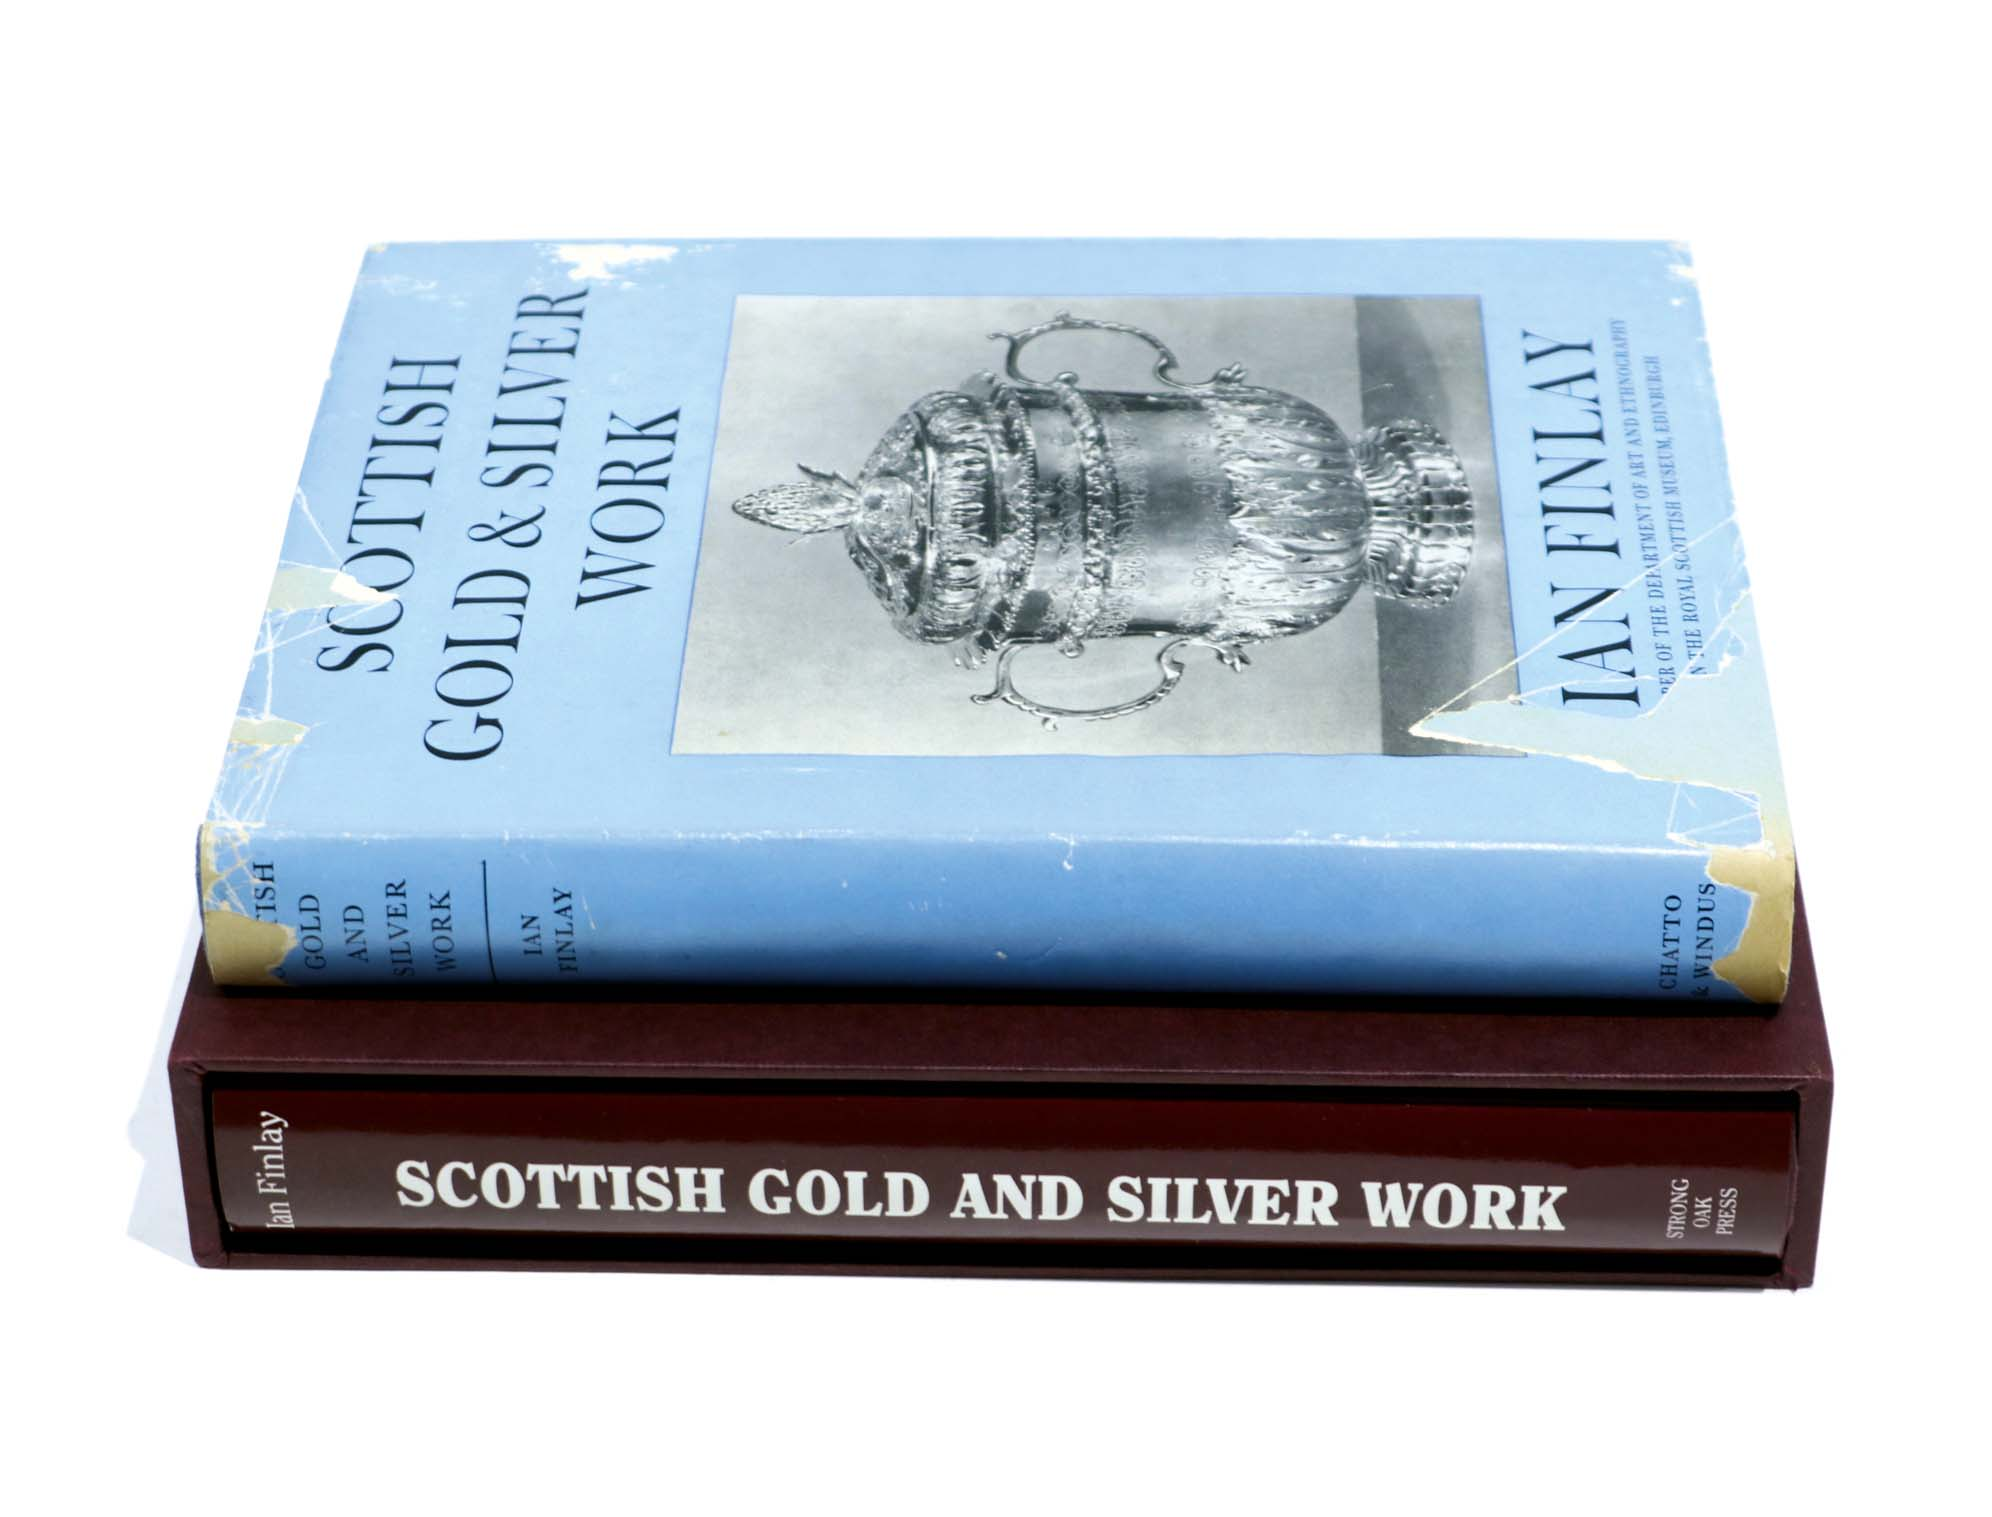 Lot 42 - General:- Finlay, I: Scottish Gold & Silver work 1956, and the Revised Edition by the same author,